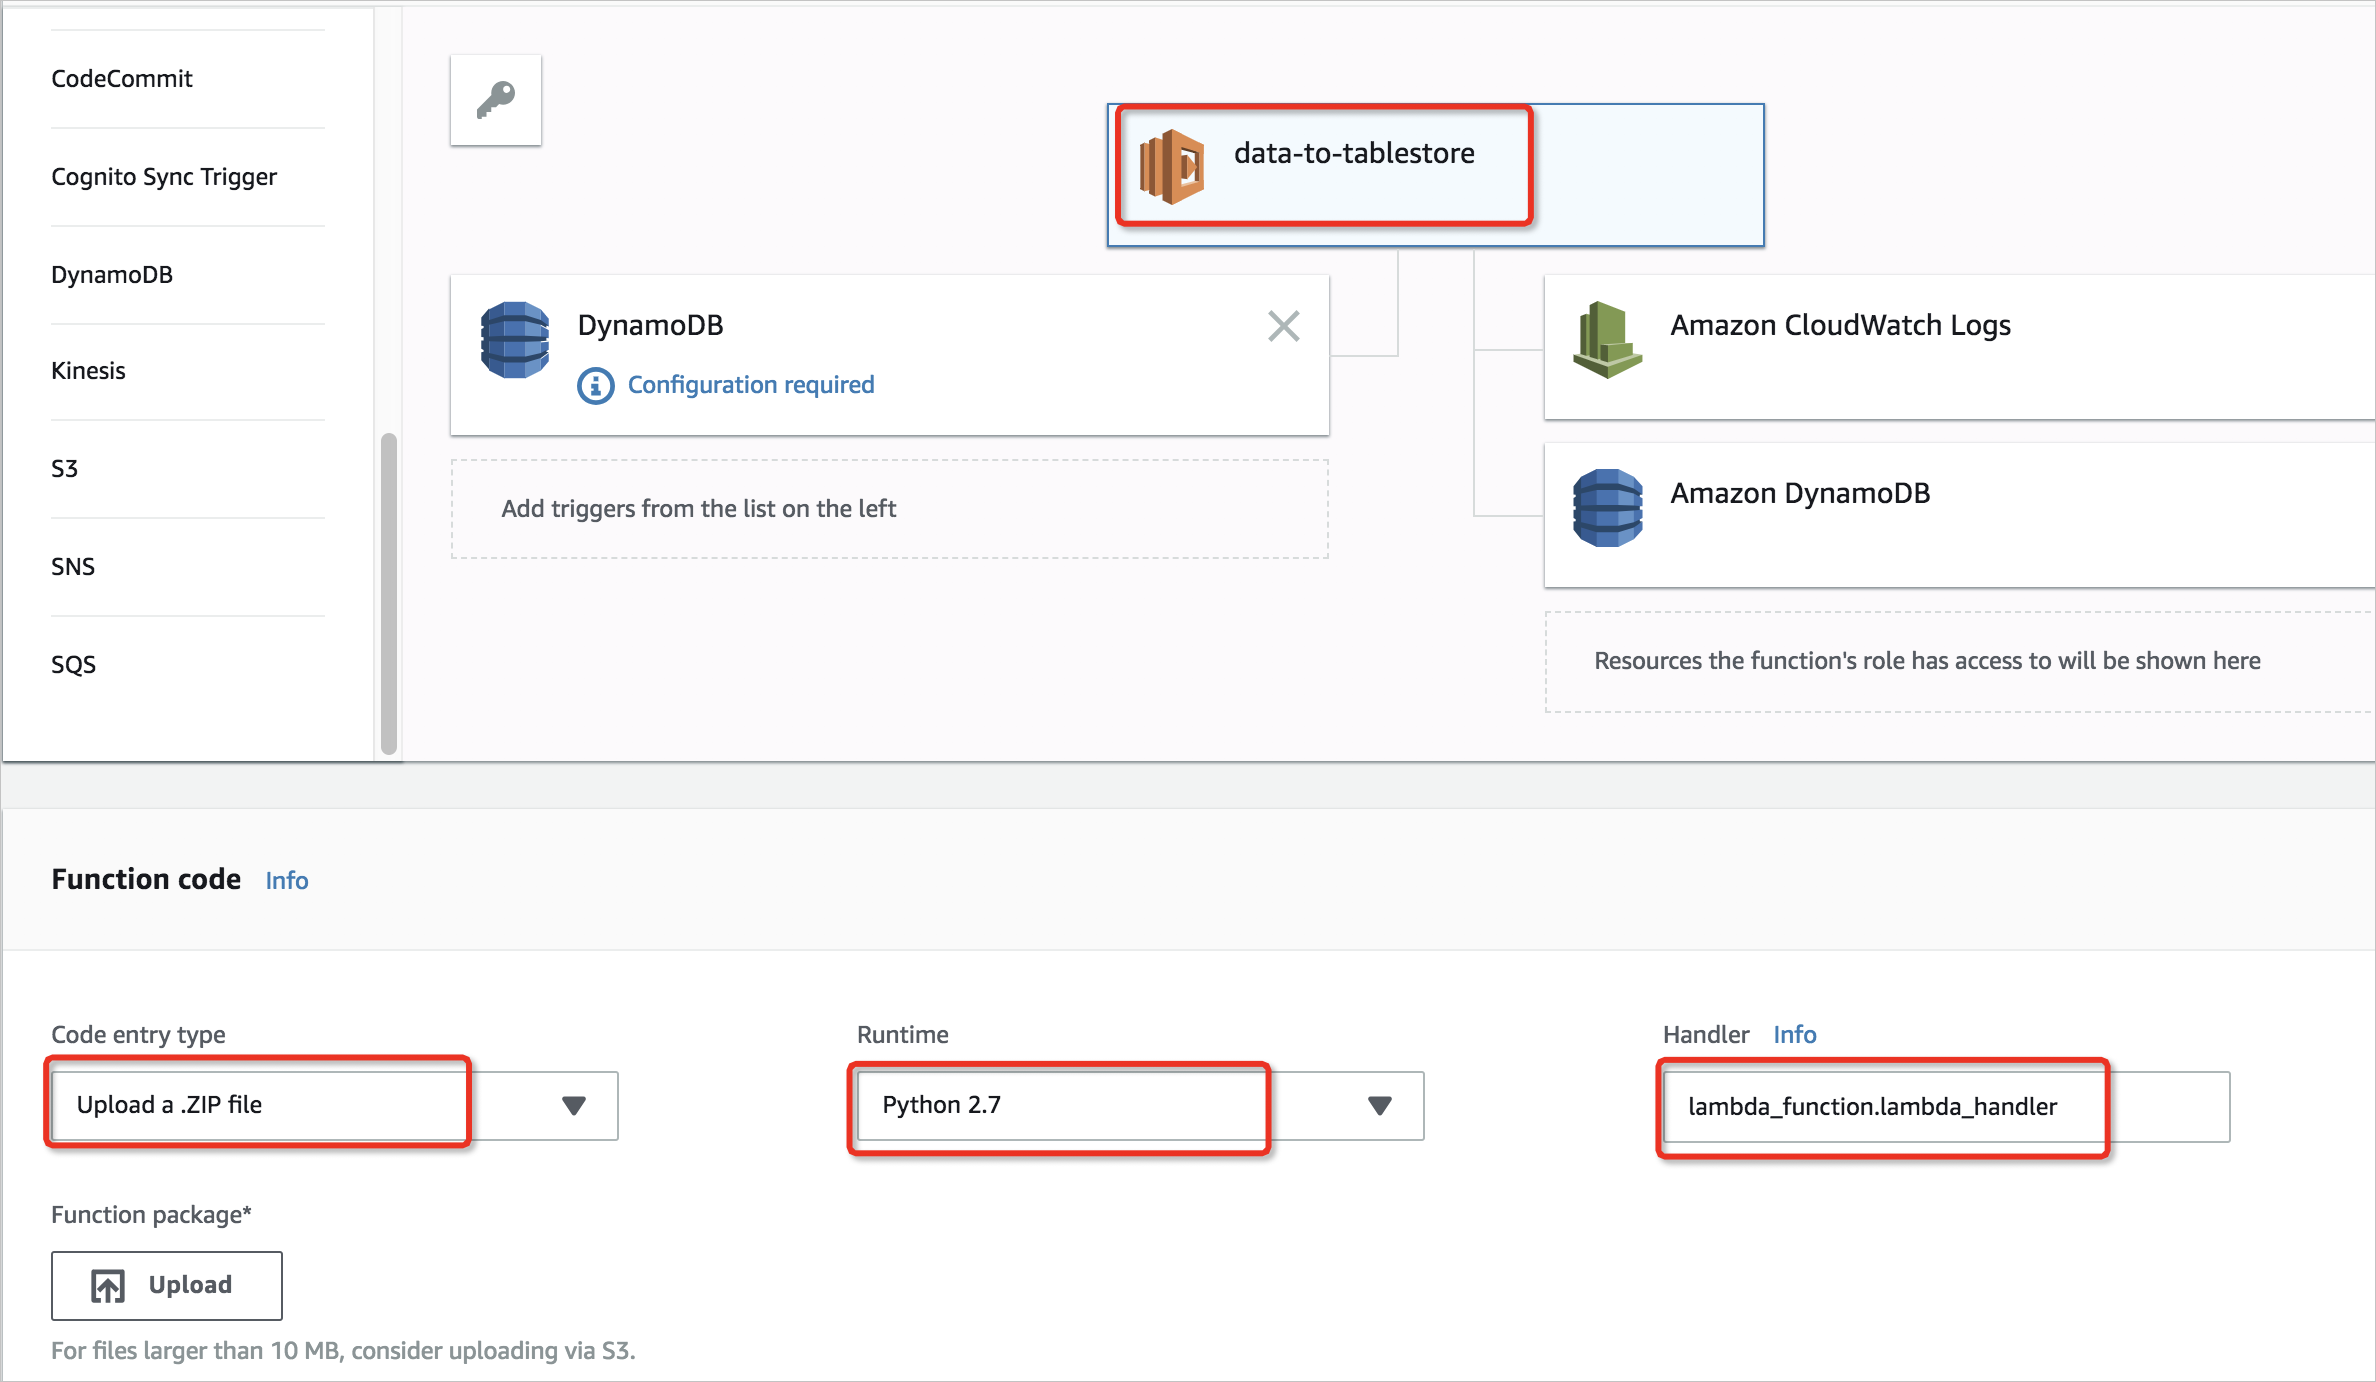 How to incrementally migrate DynamoDB data to Table Store-云